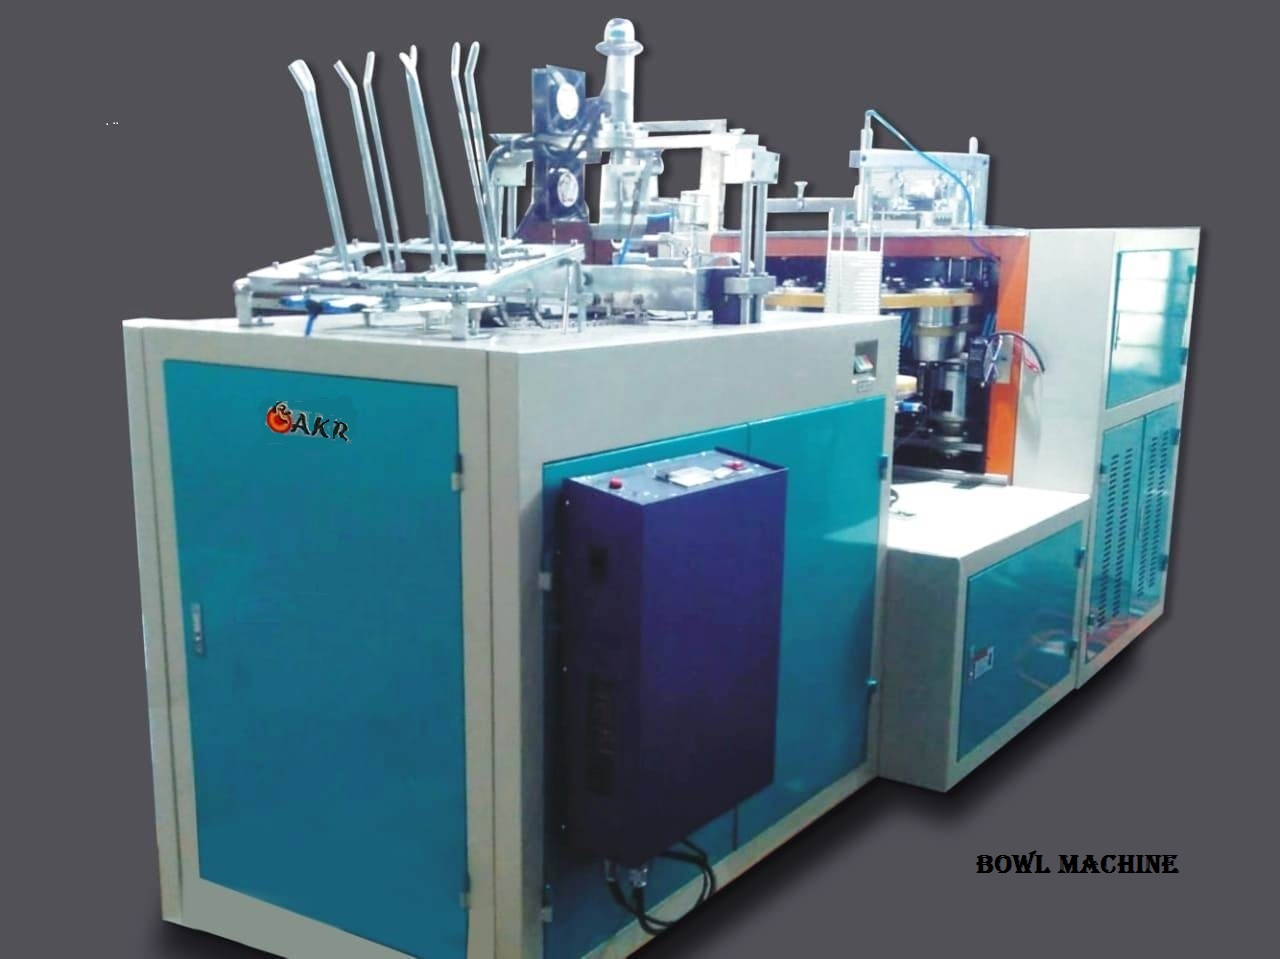 Paper Bowl Manufacturing Machine